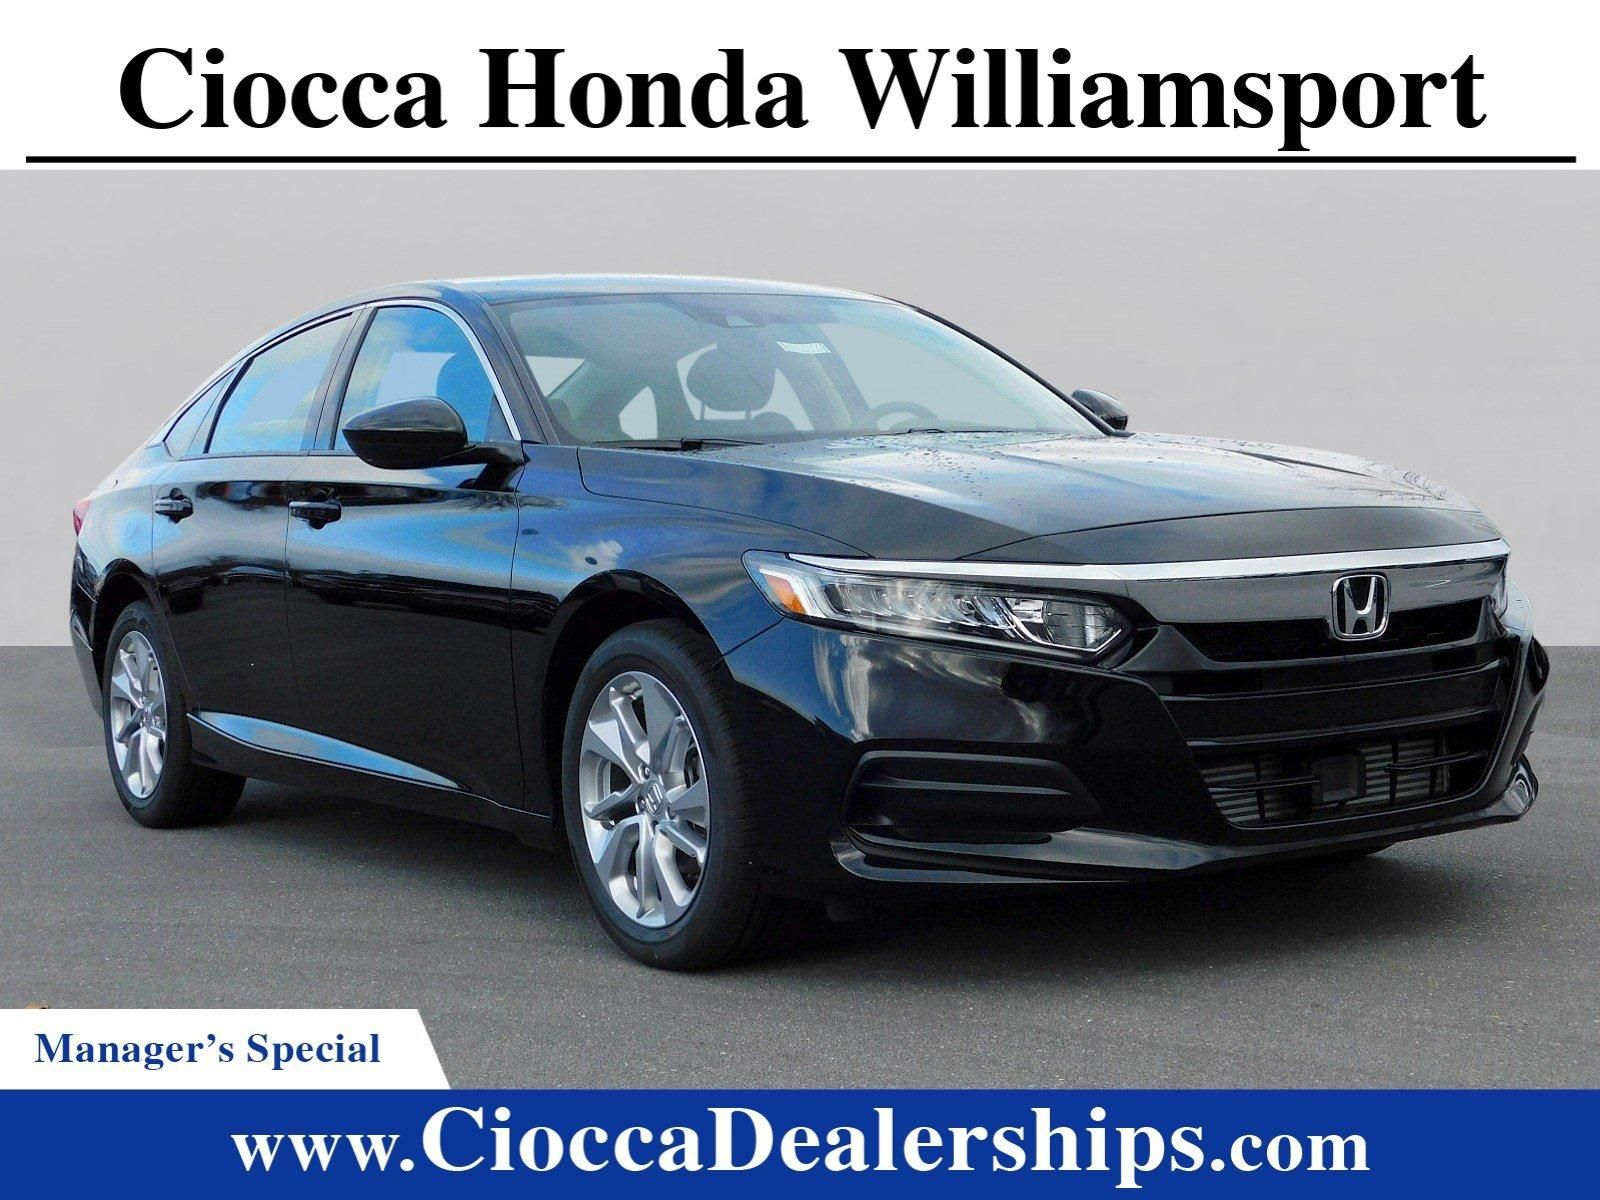 Pin By Arts Business On Dantucker Auto Honda Accord Lease Deals